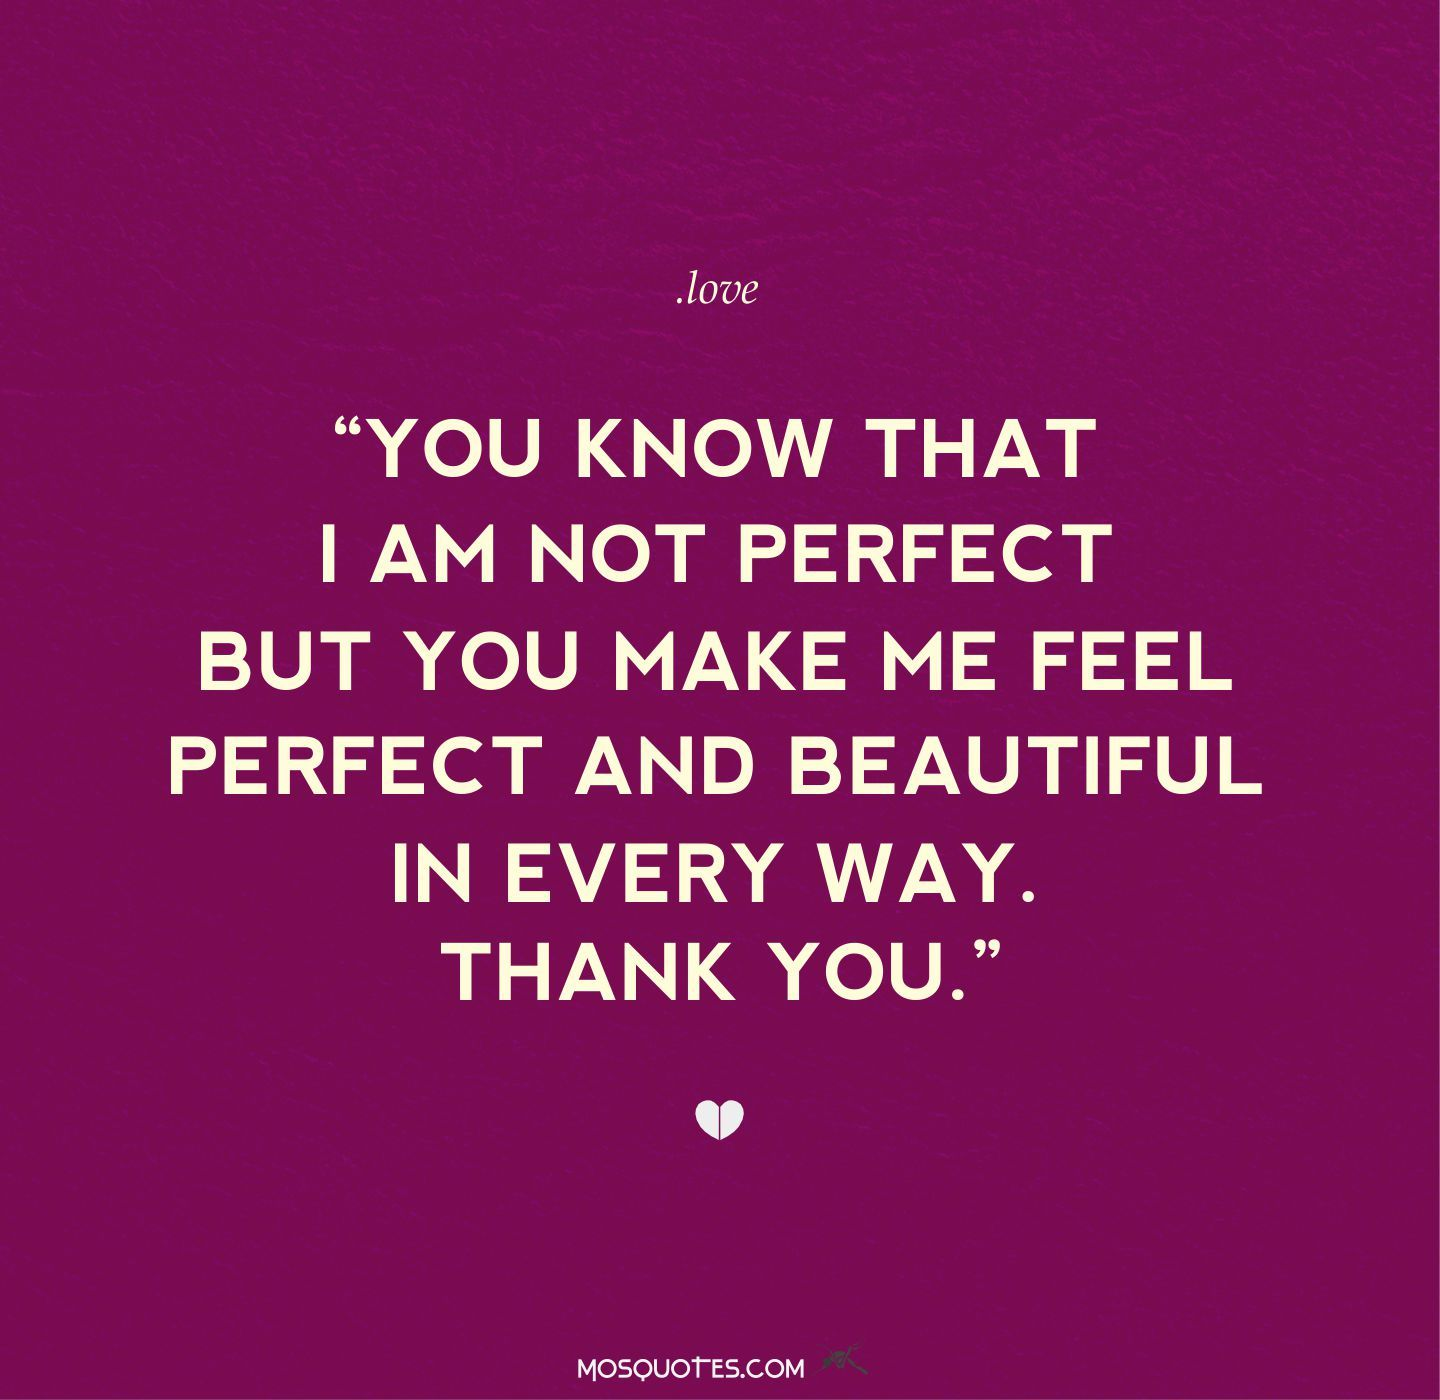 You Make Me Feel Beautiful Quotes Twitter thumbnail